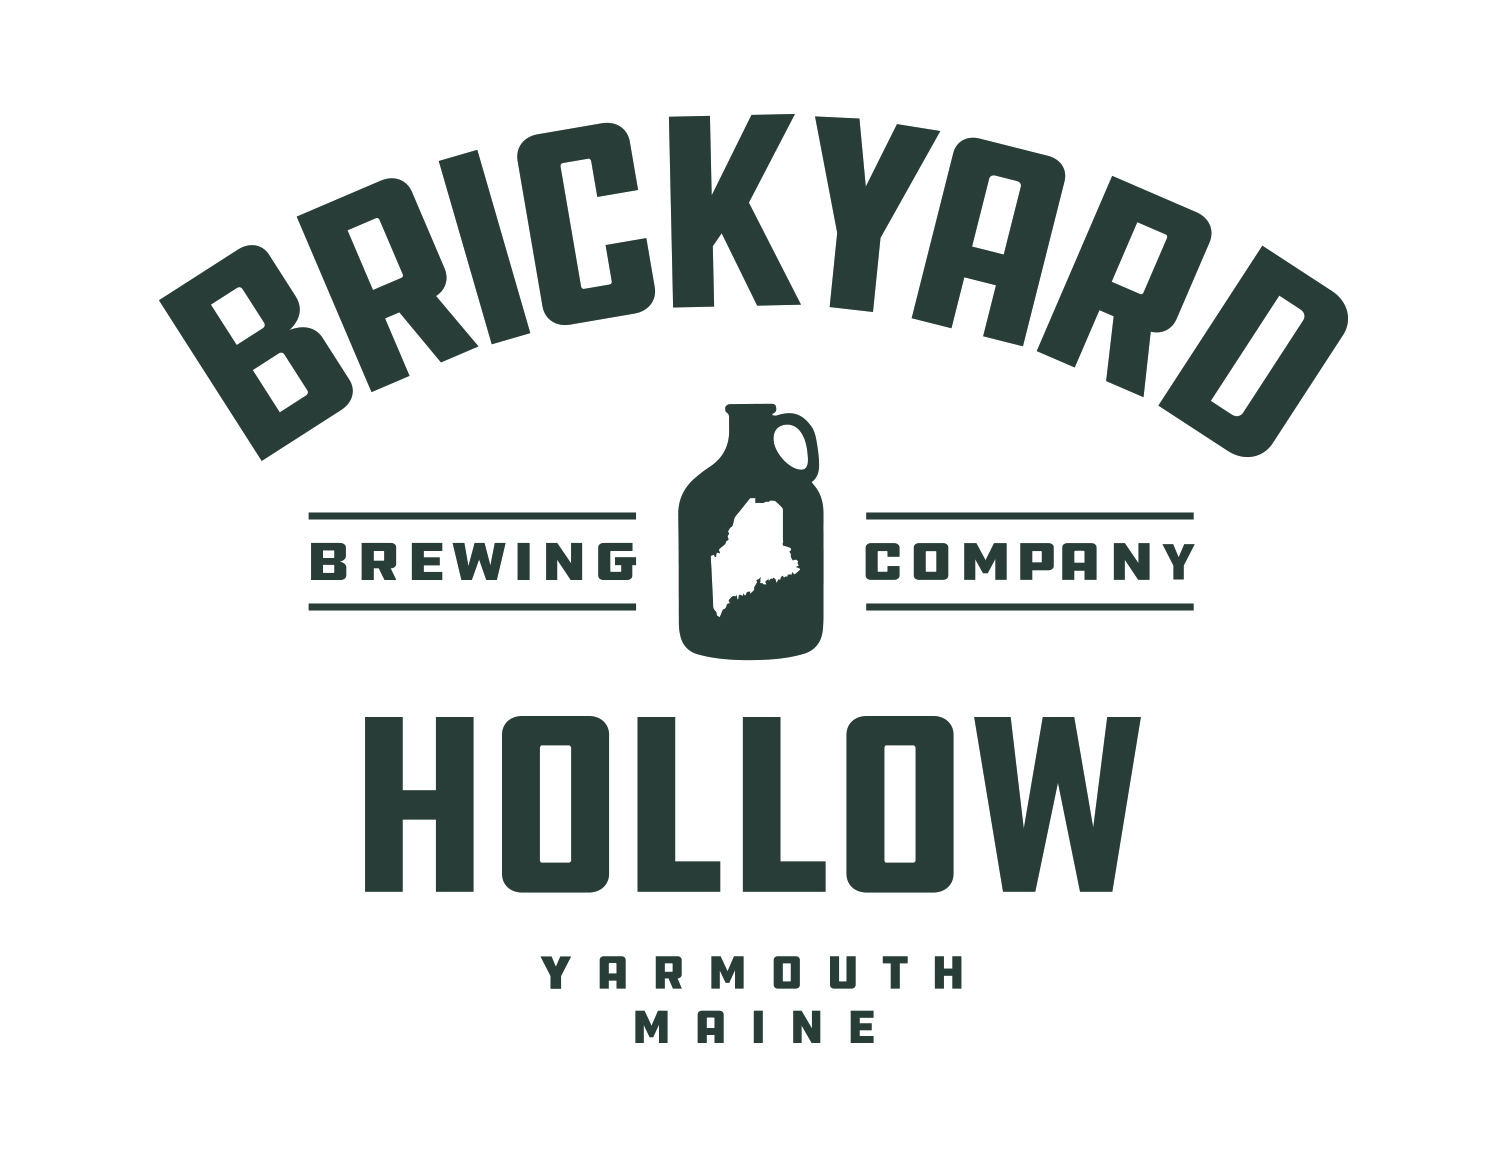 Brickyard Hollow Brewing Company